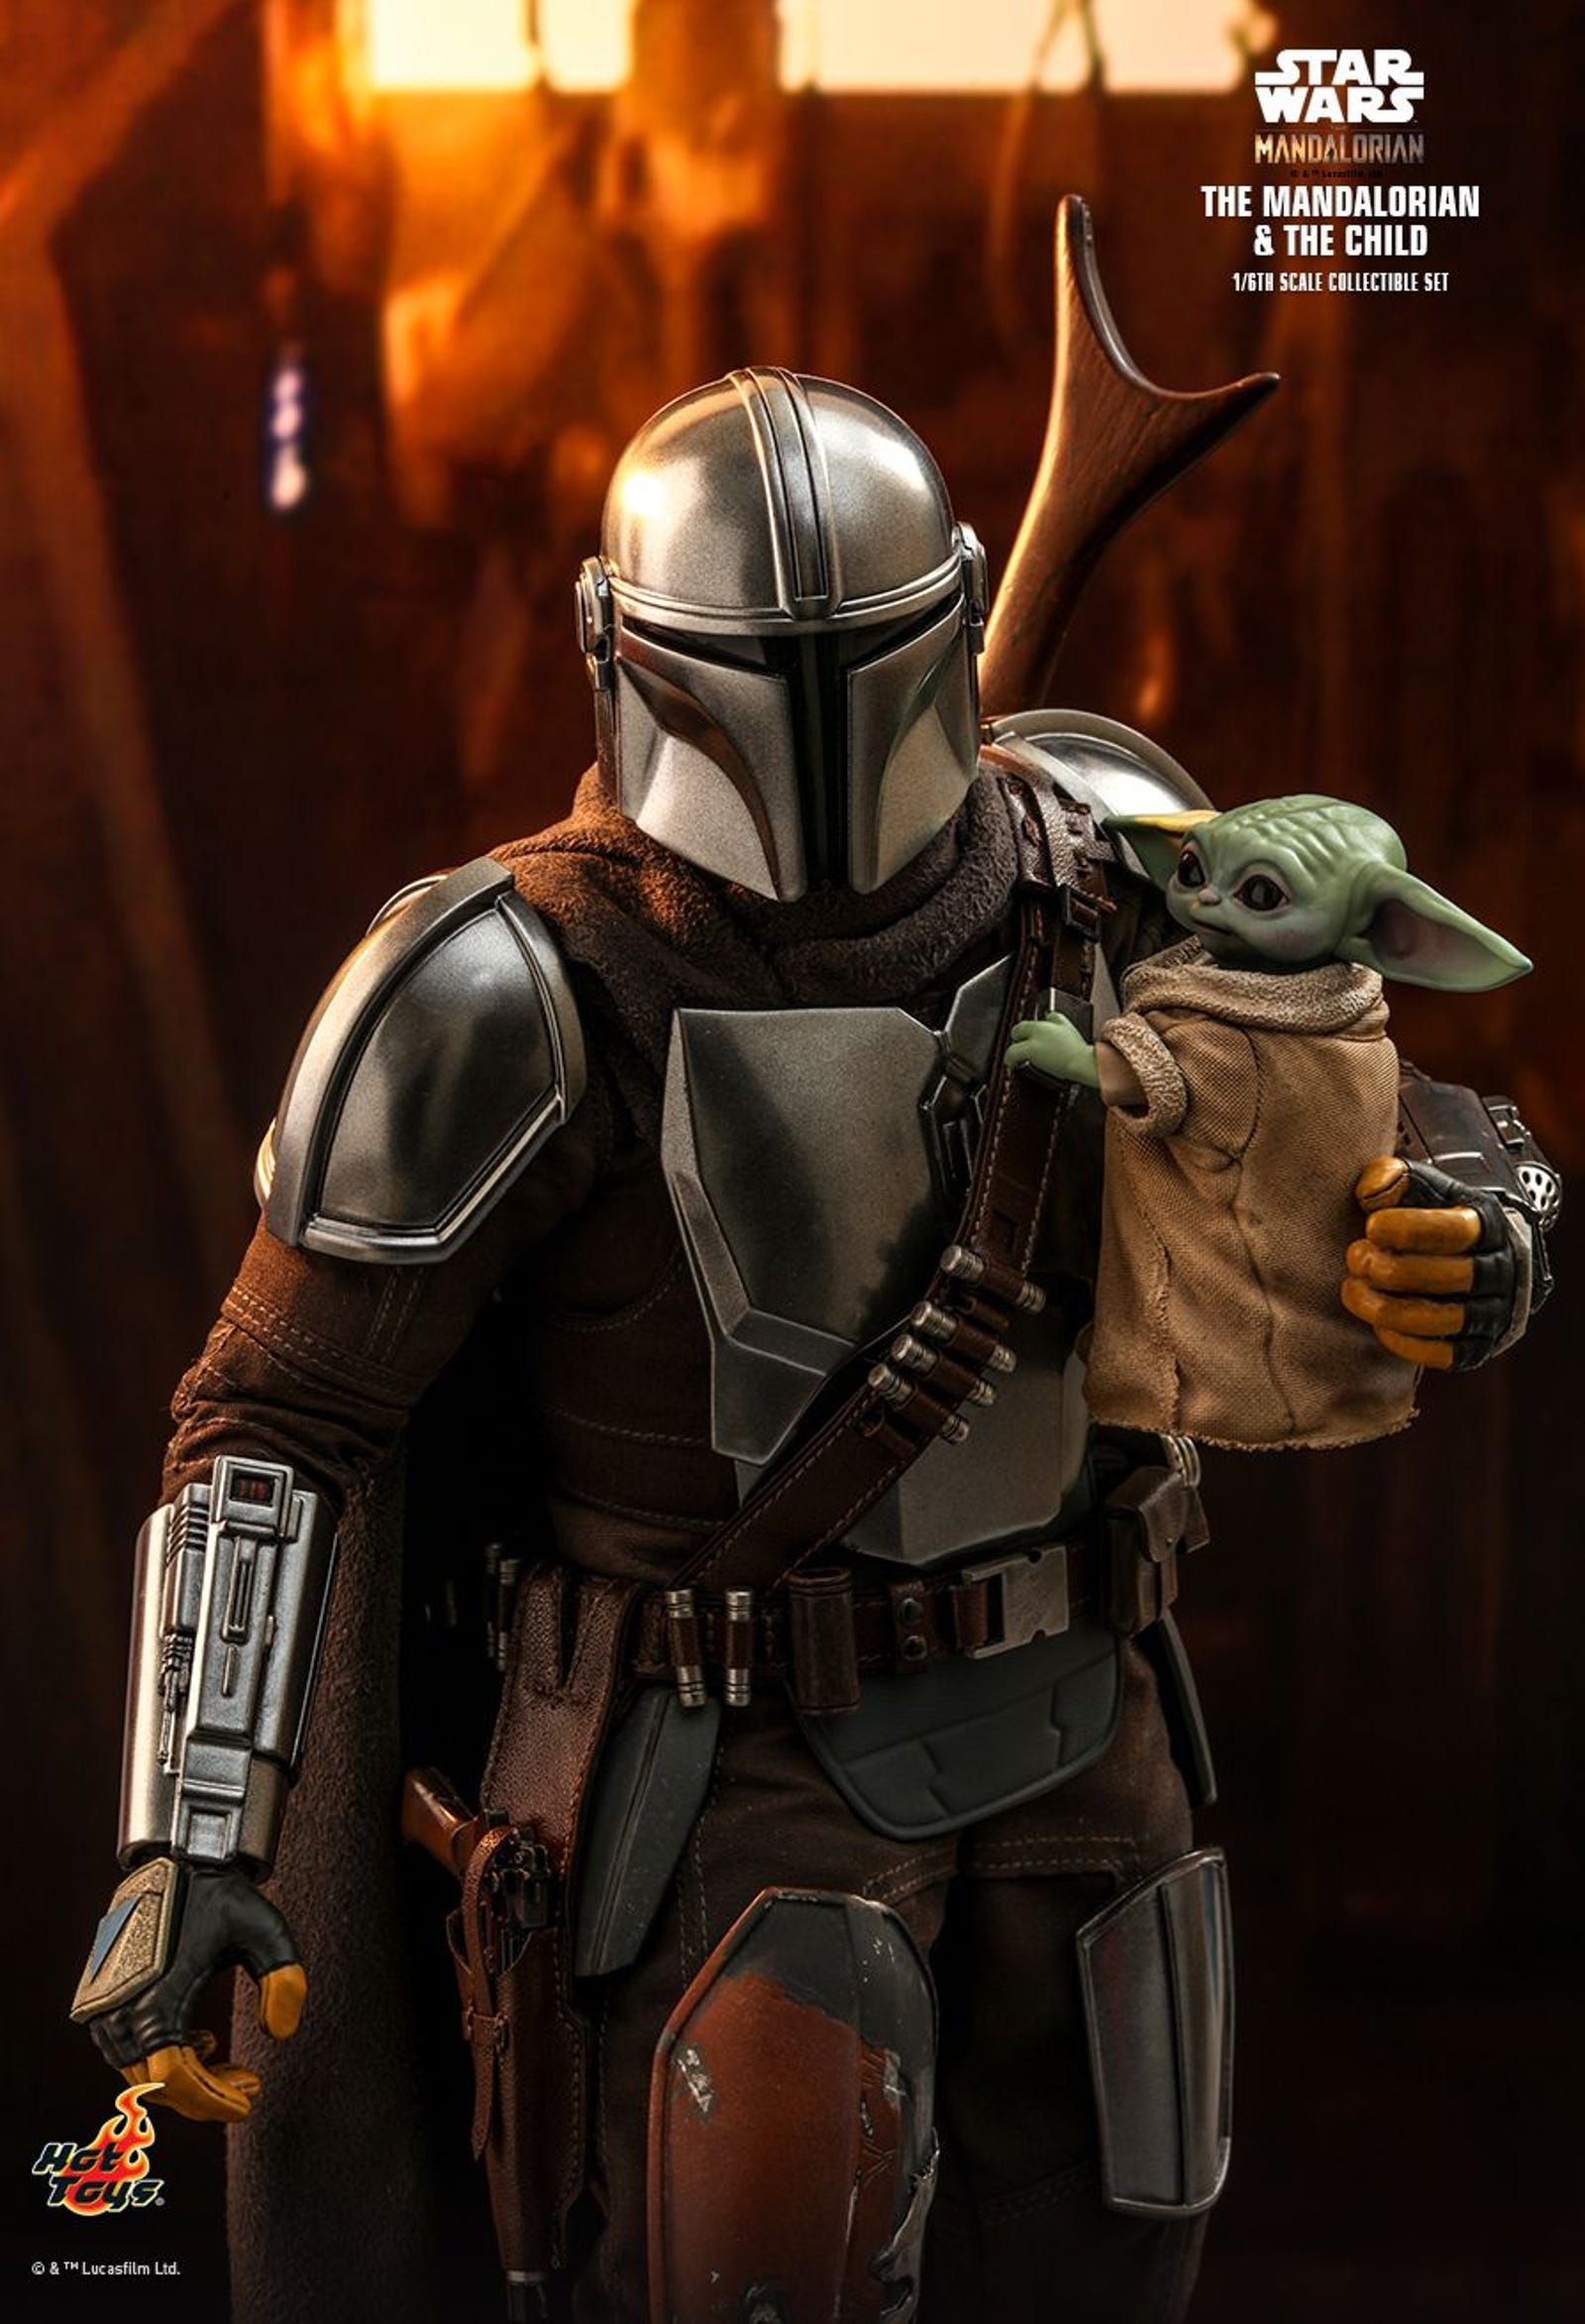 Check out all this images of the 6th scale Mandalorian and Child.